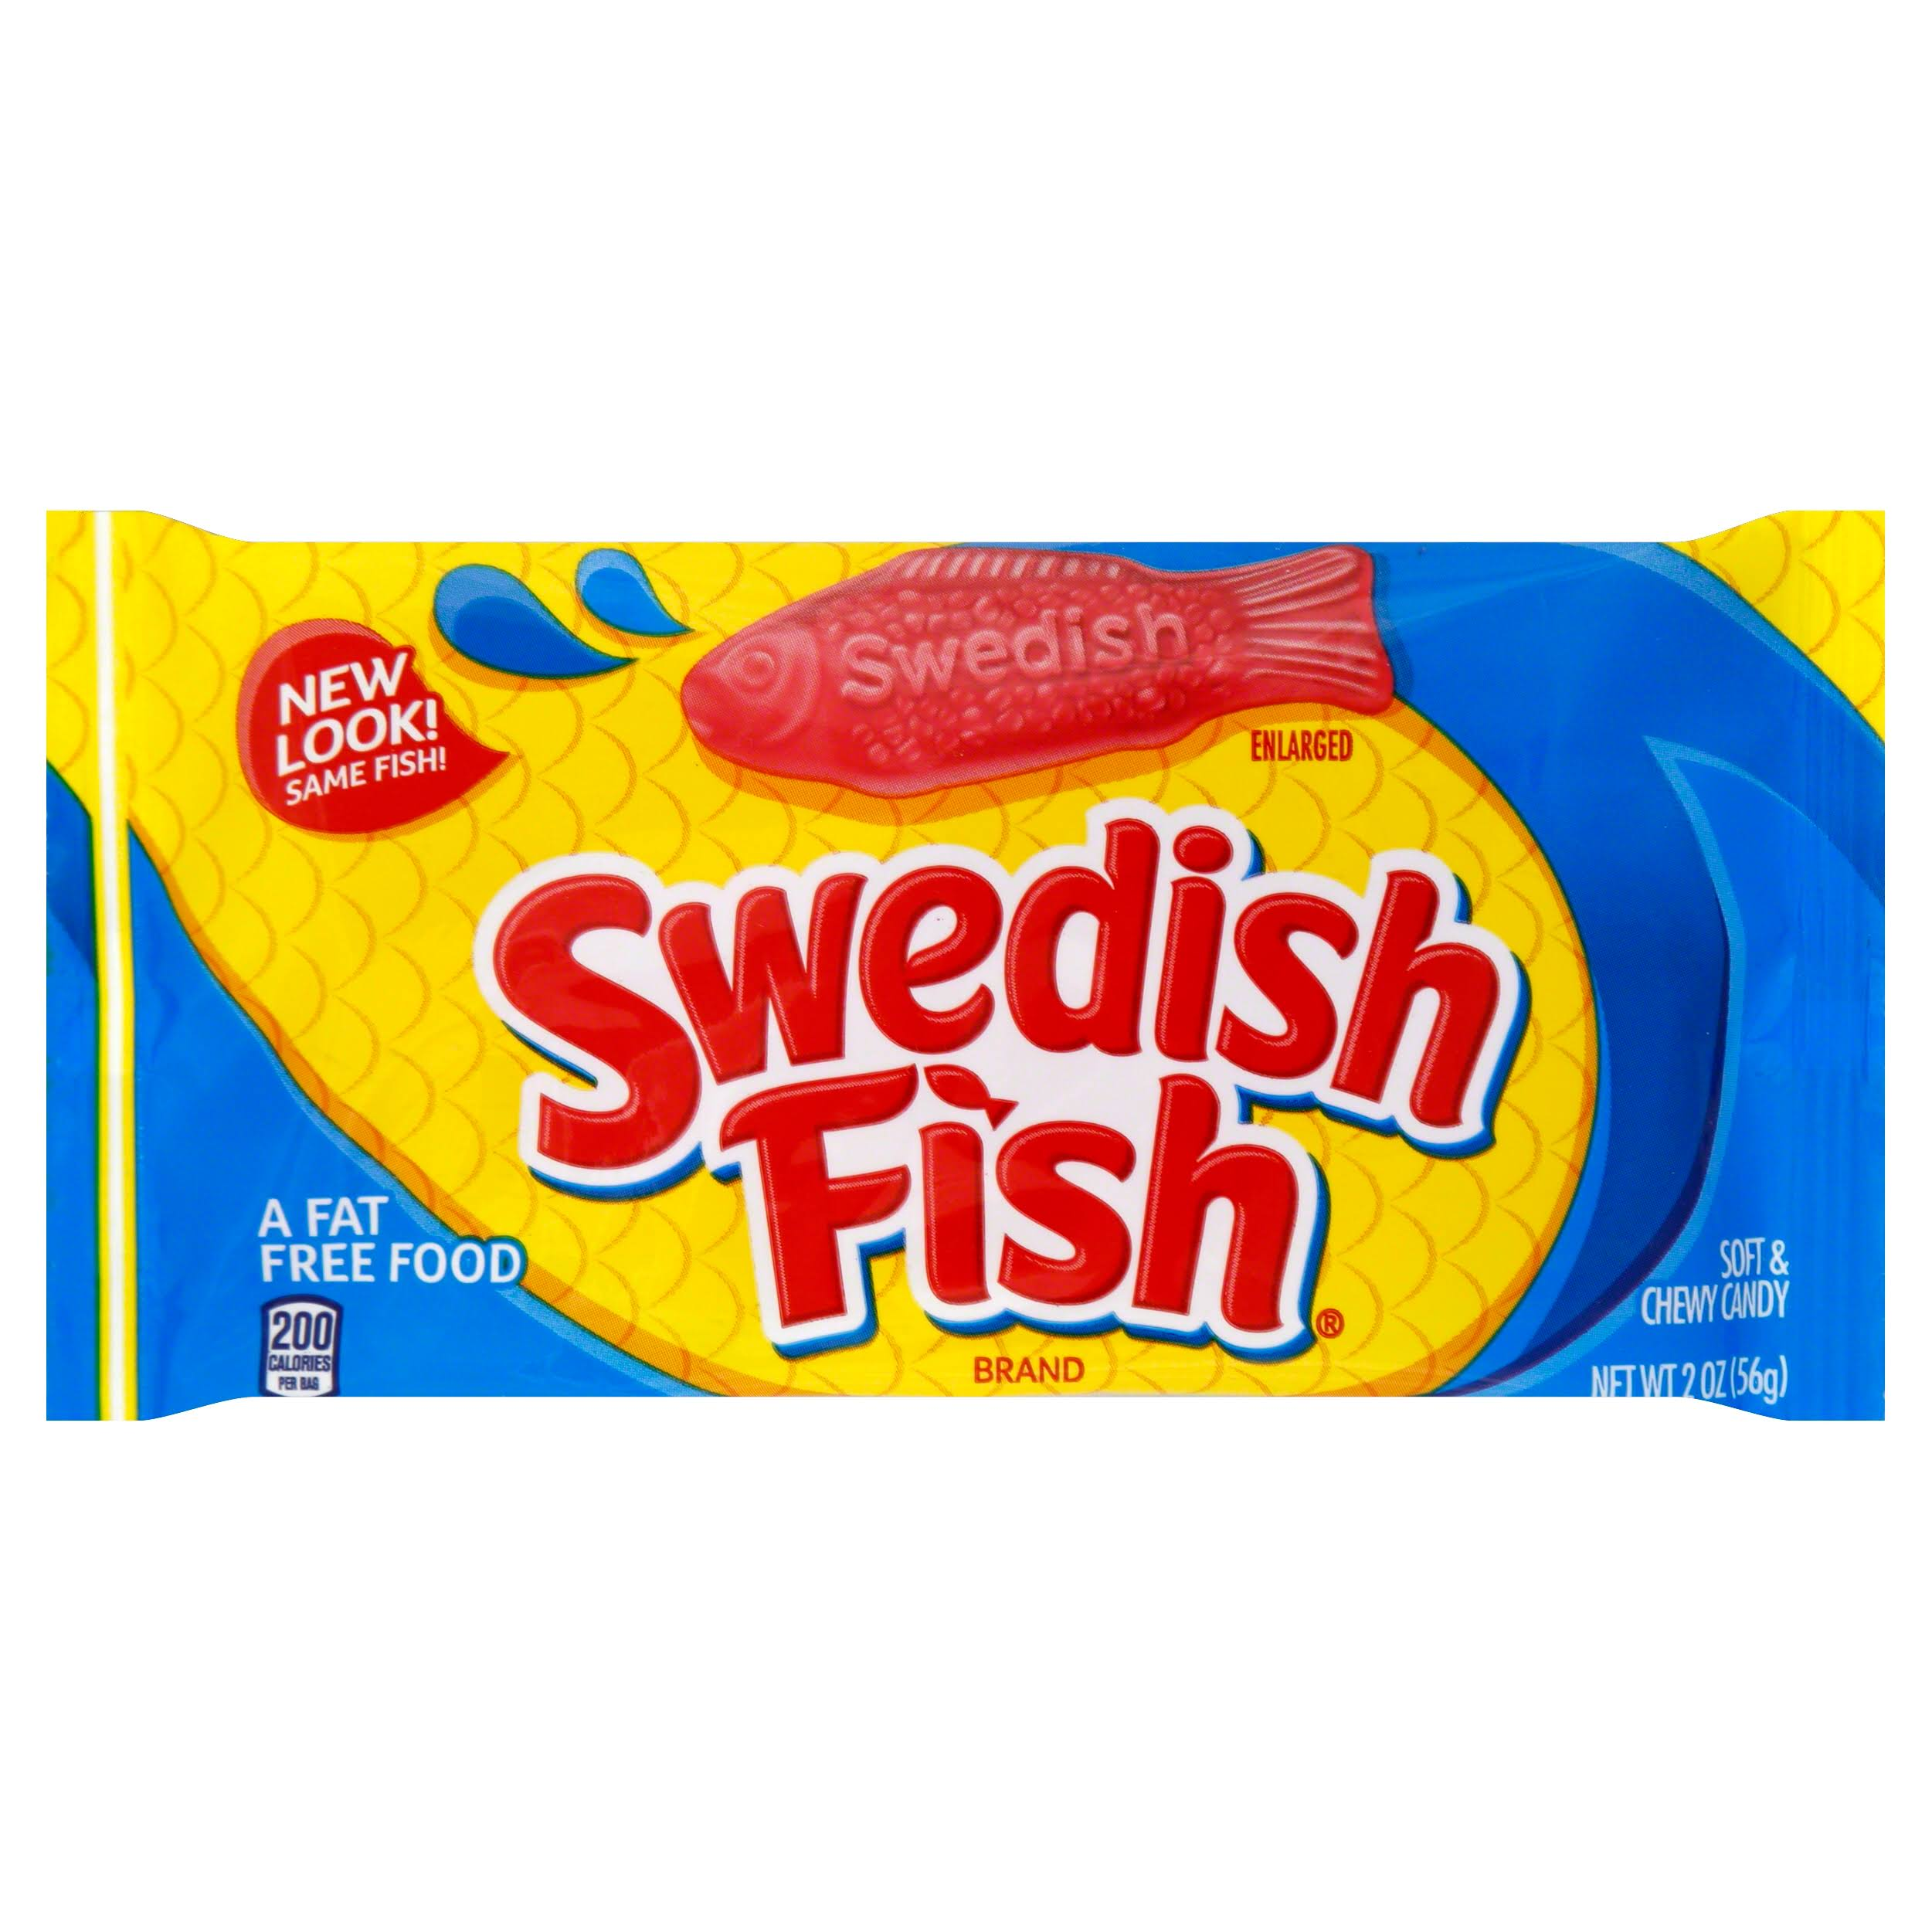 Swedish Fish Red Fish Soft and Chewy Candy - 2oz